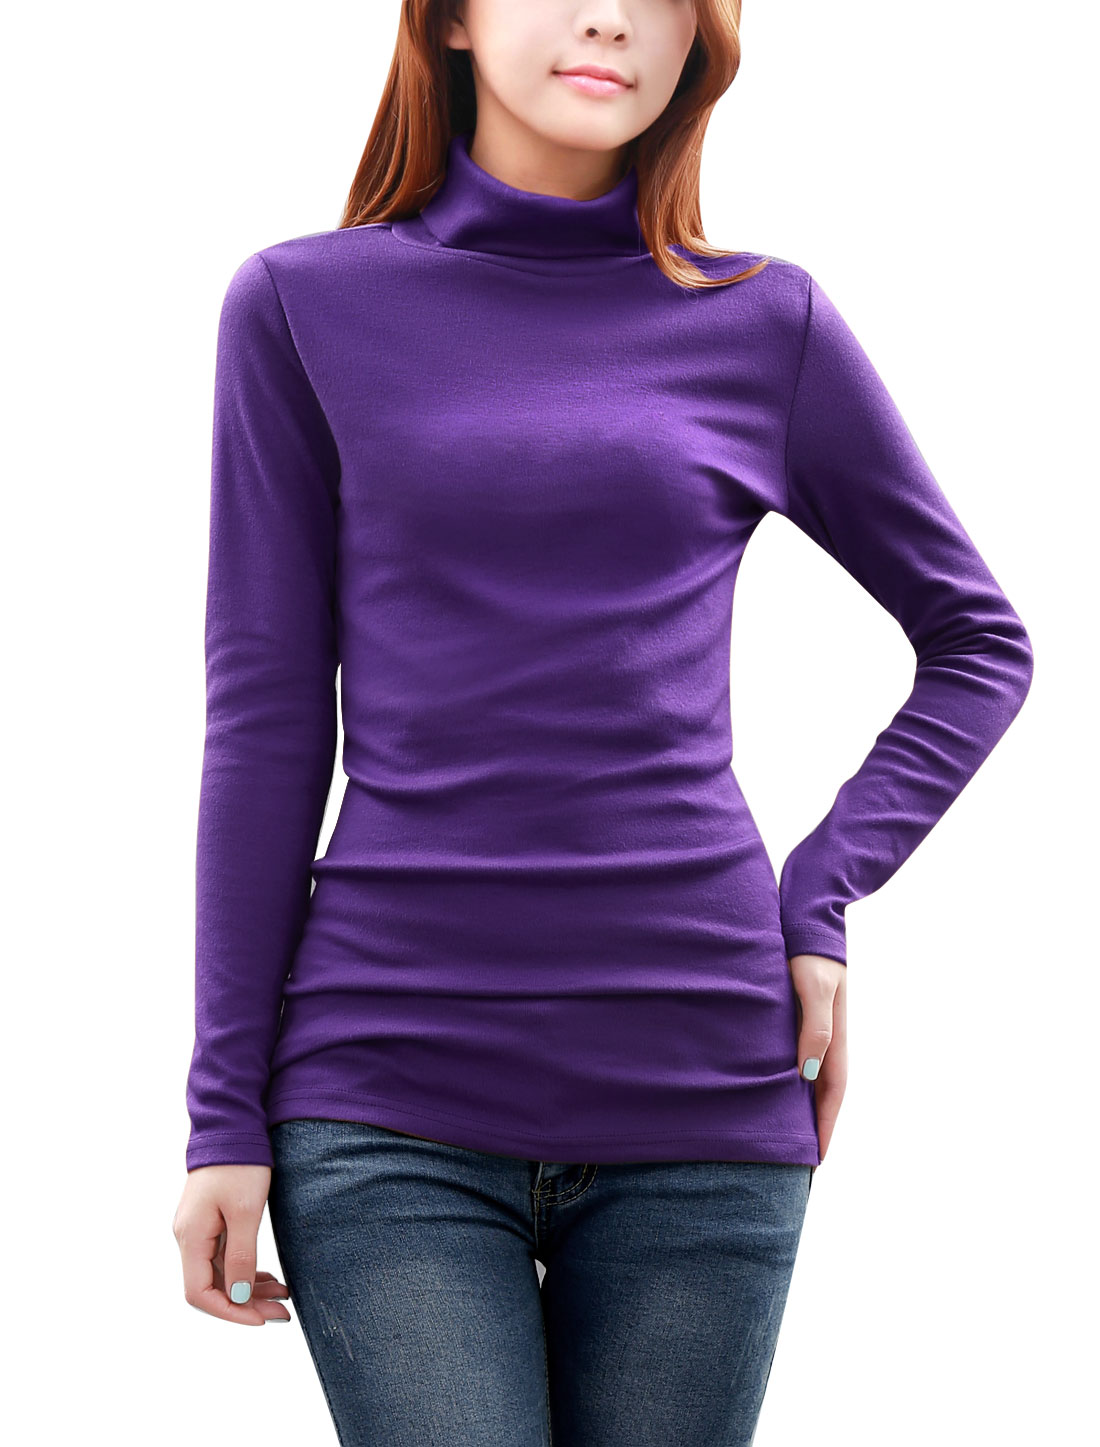 Ladies Long Sleeves Turtle Neck Stretch Autumn Blouse Purple M